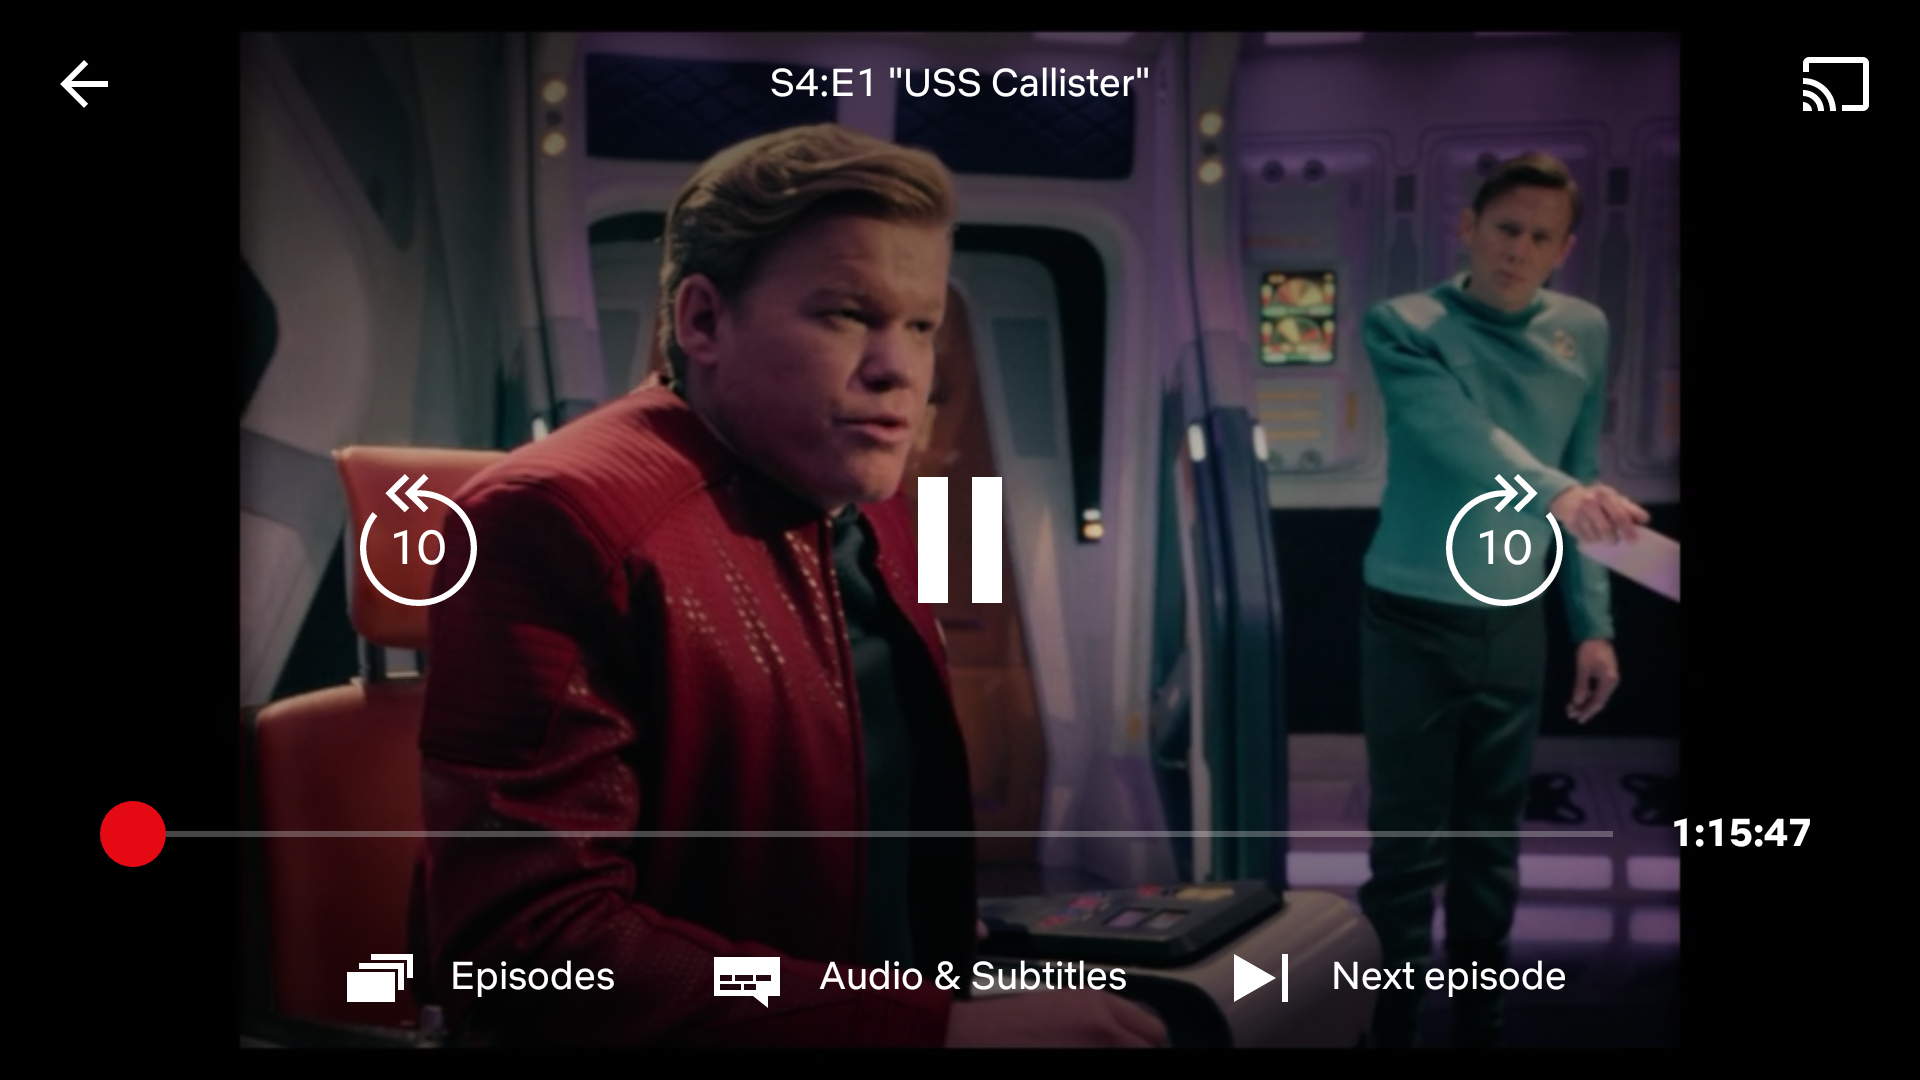 Netflix finally redesigns its player UI with larger controls, -/+ 10s, and 'Next Episode' button